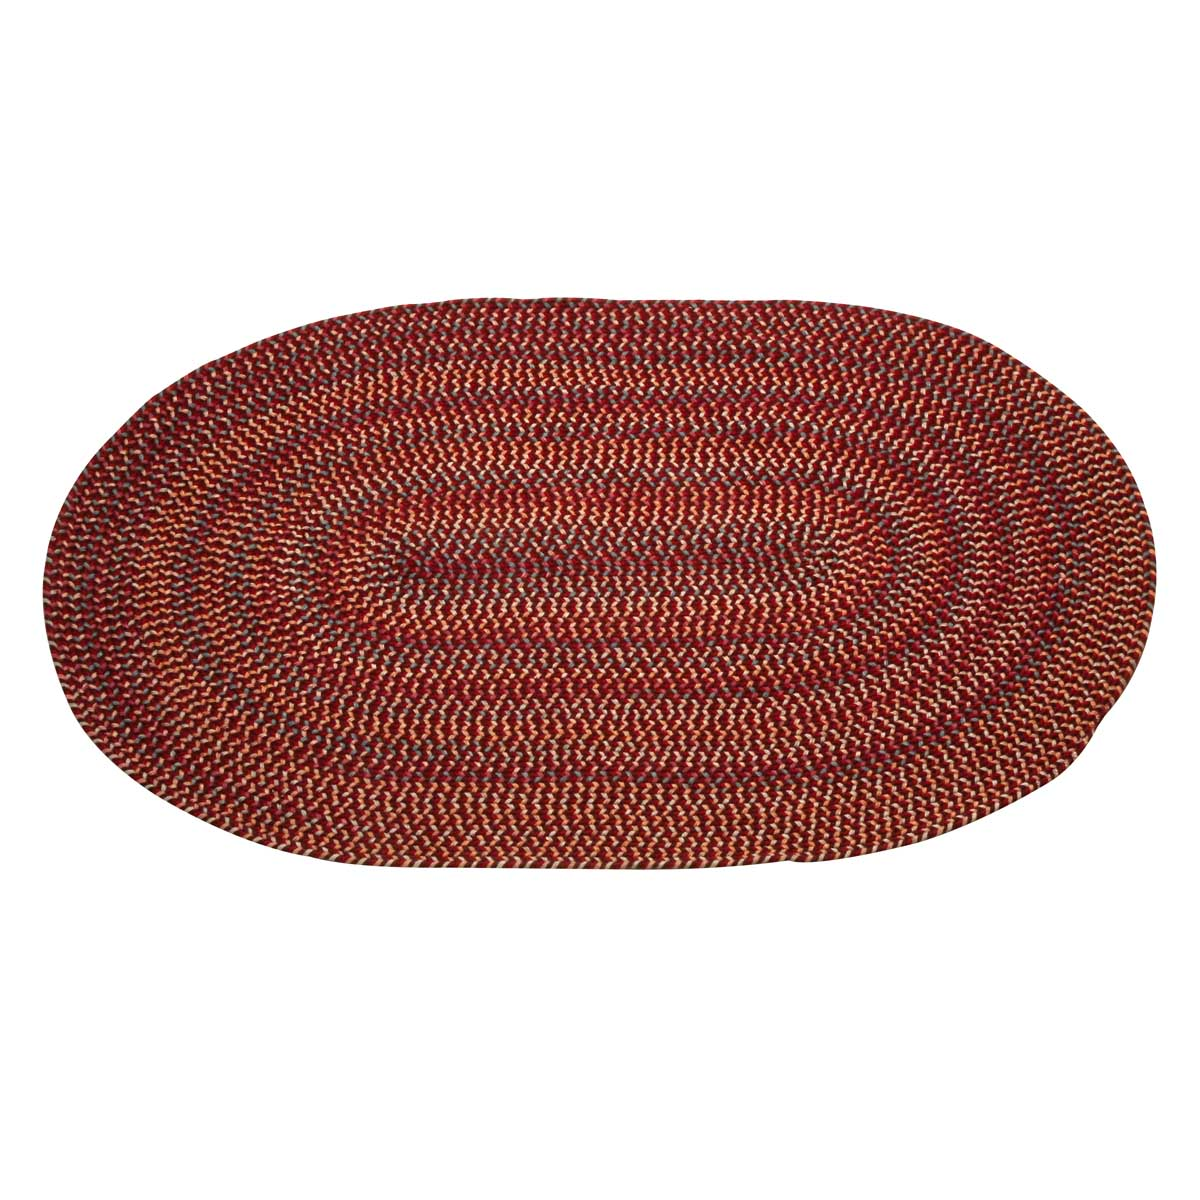 braided kitchen rugs refinishing countertops rug nylon red 4 39 x 6